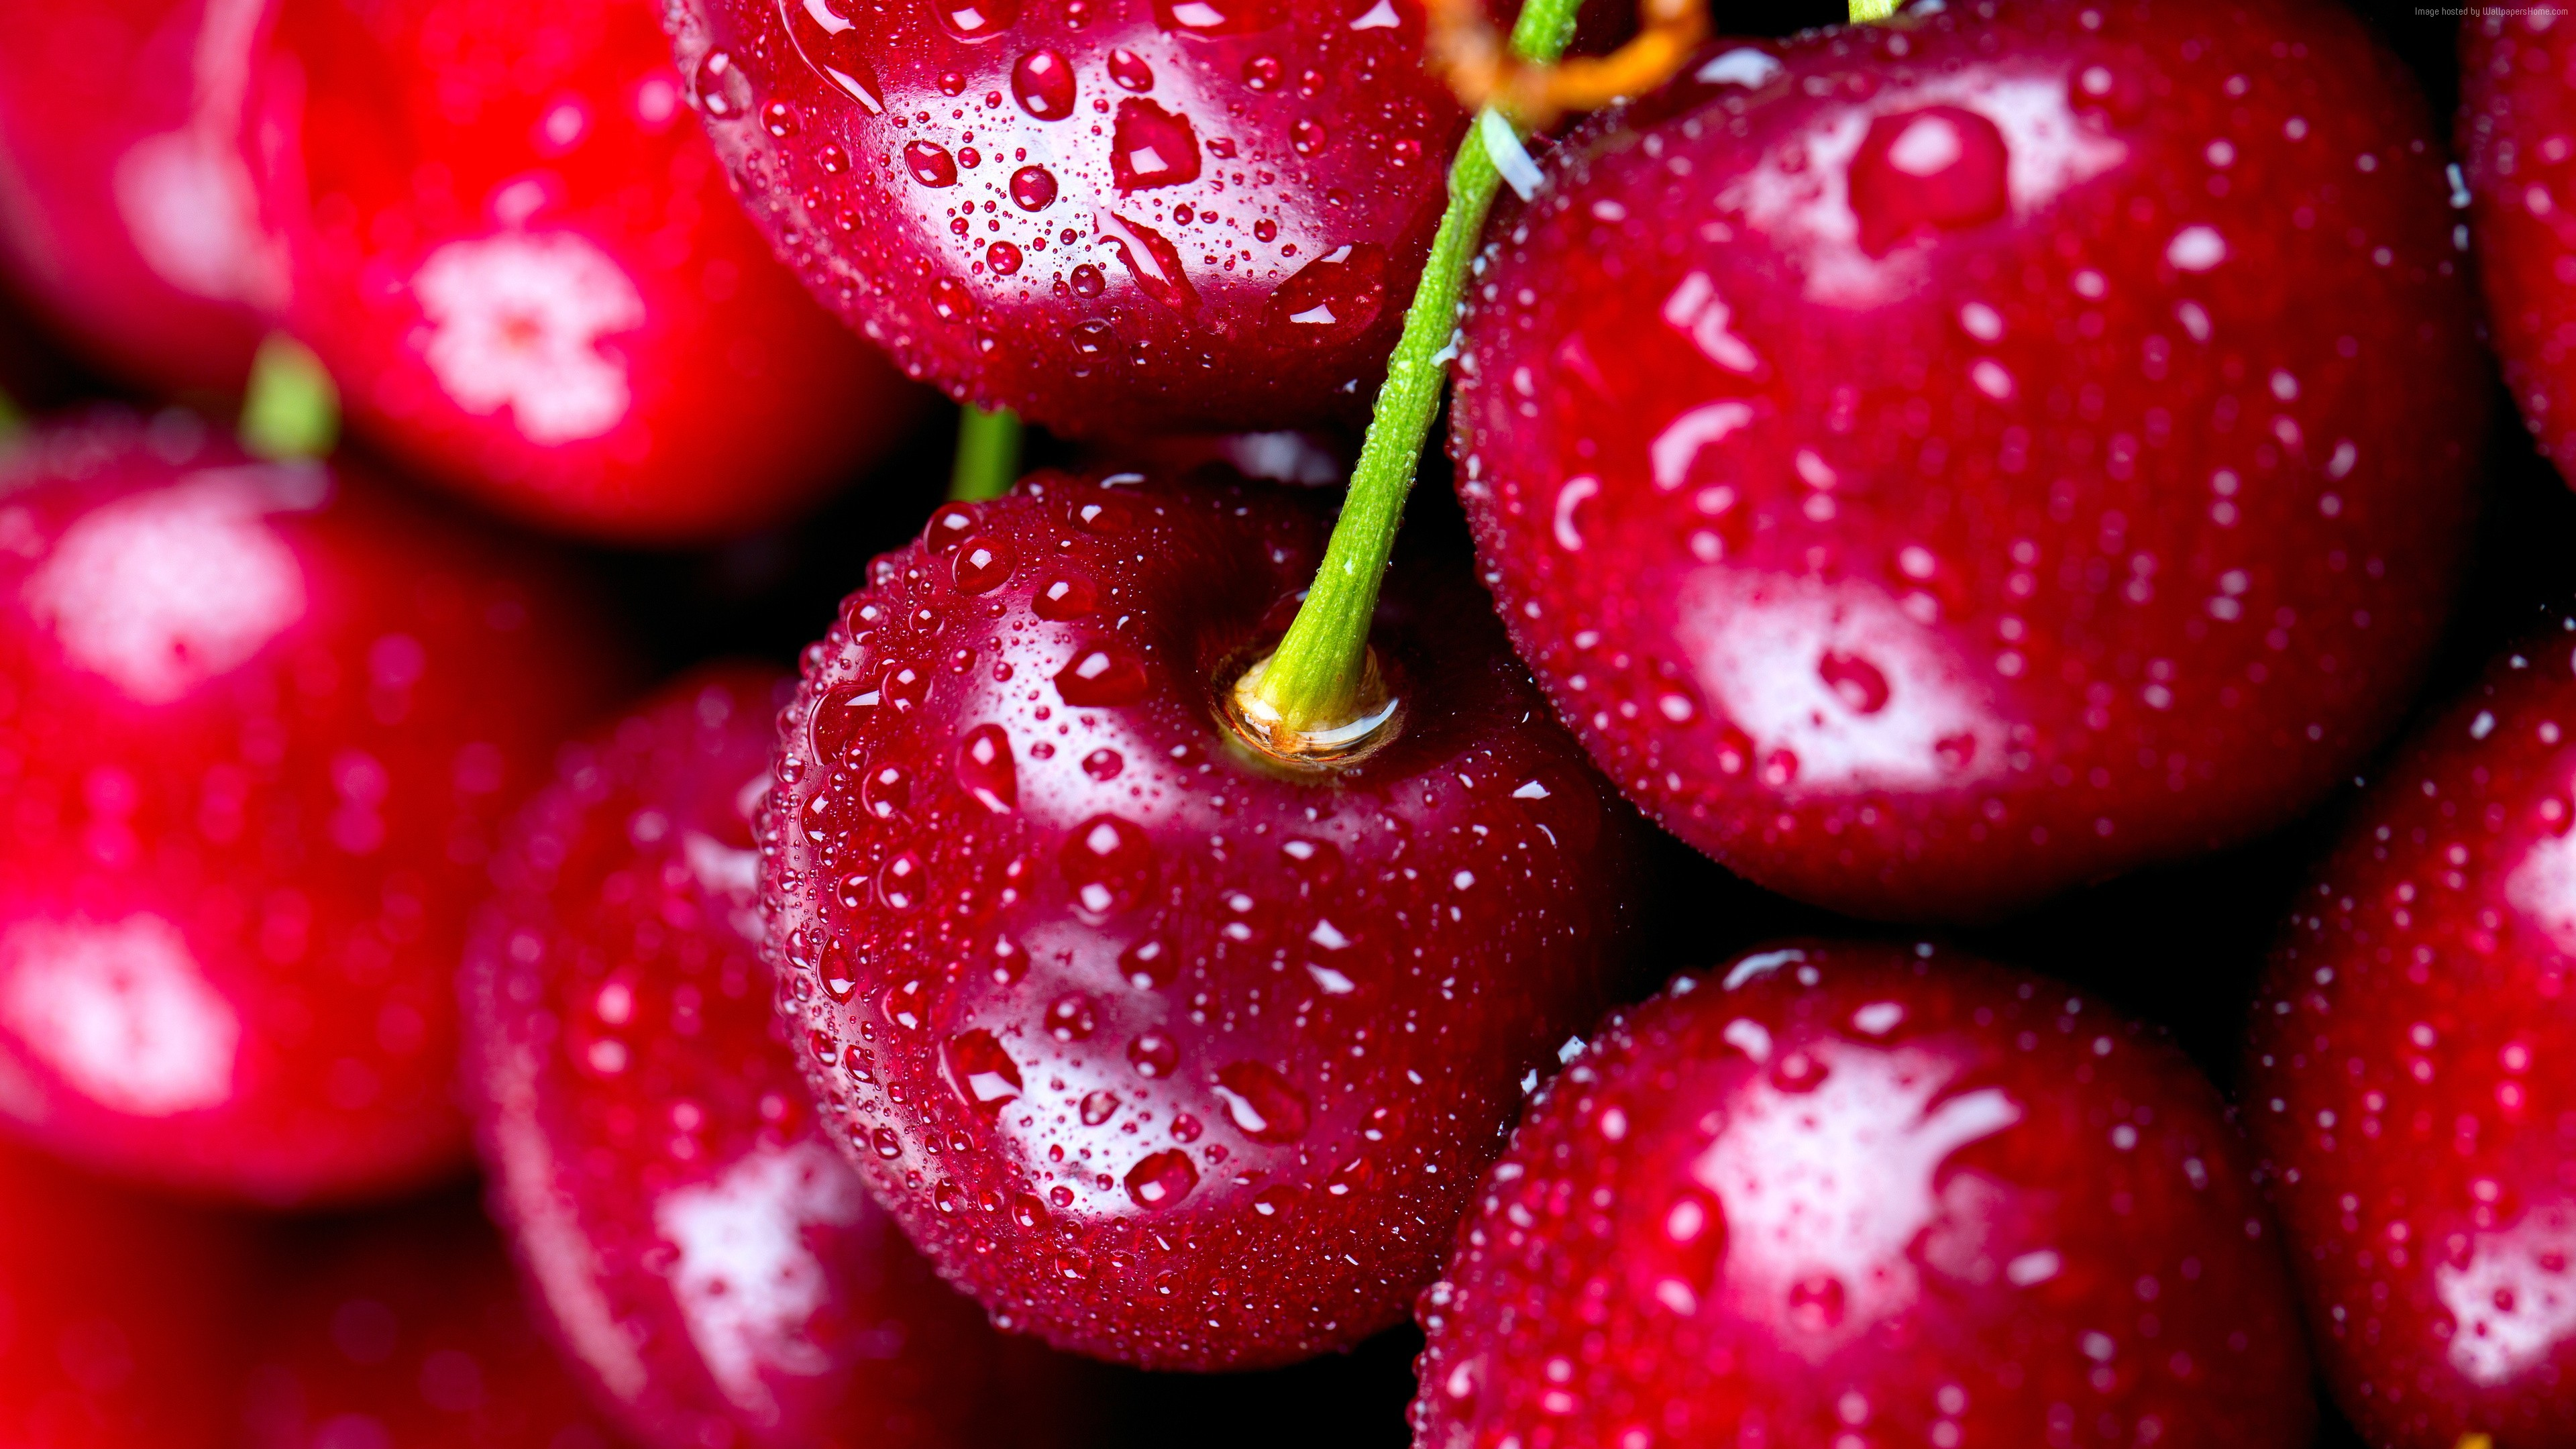 Wallpaper cherries, delicious, 4k, Food